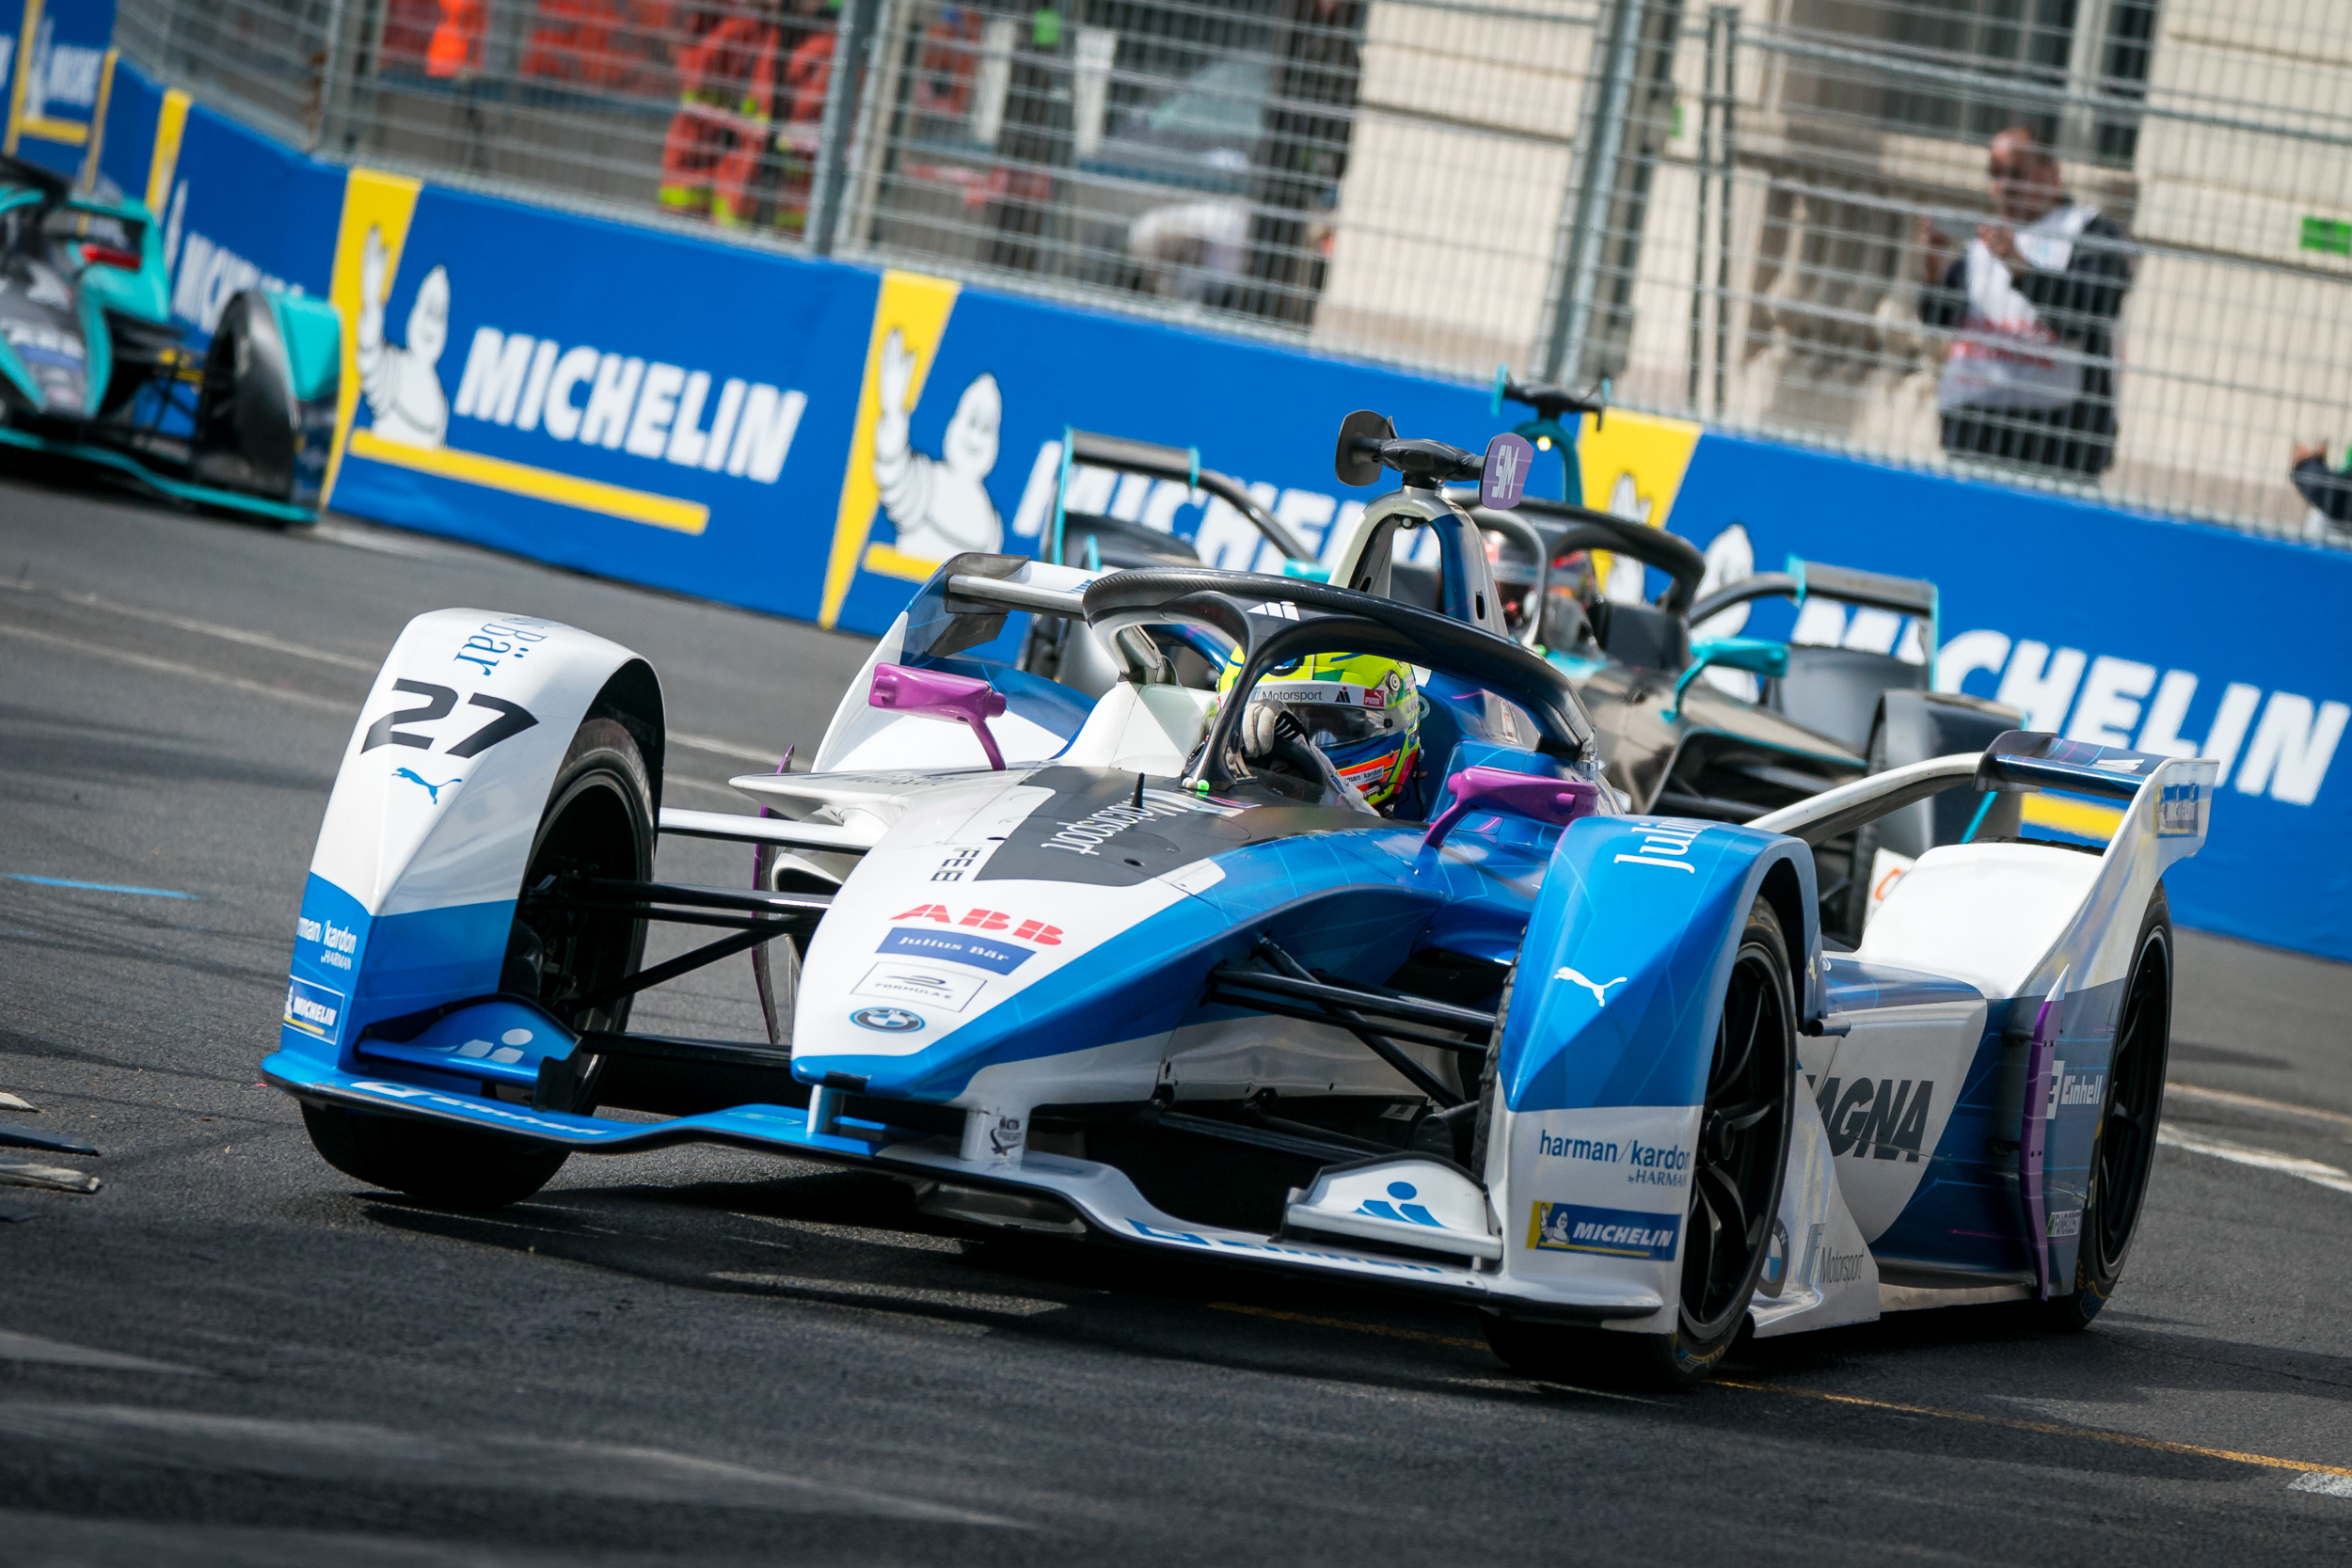 BMW i_Formula E Paris 2019_26&27-04-19_Florian Leger_SHARE & DARE_HD_N°-368.jpg